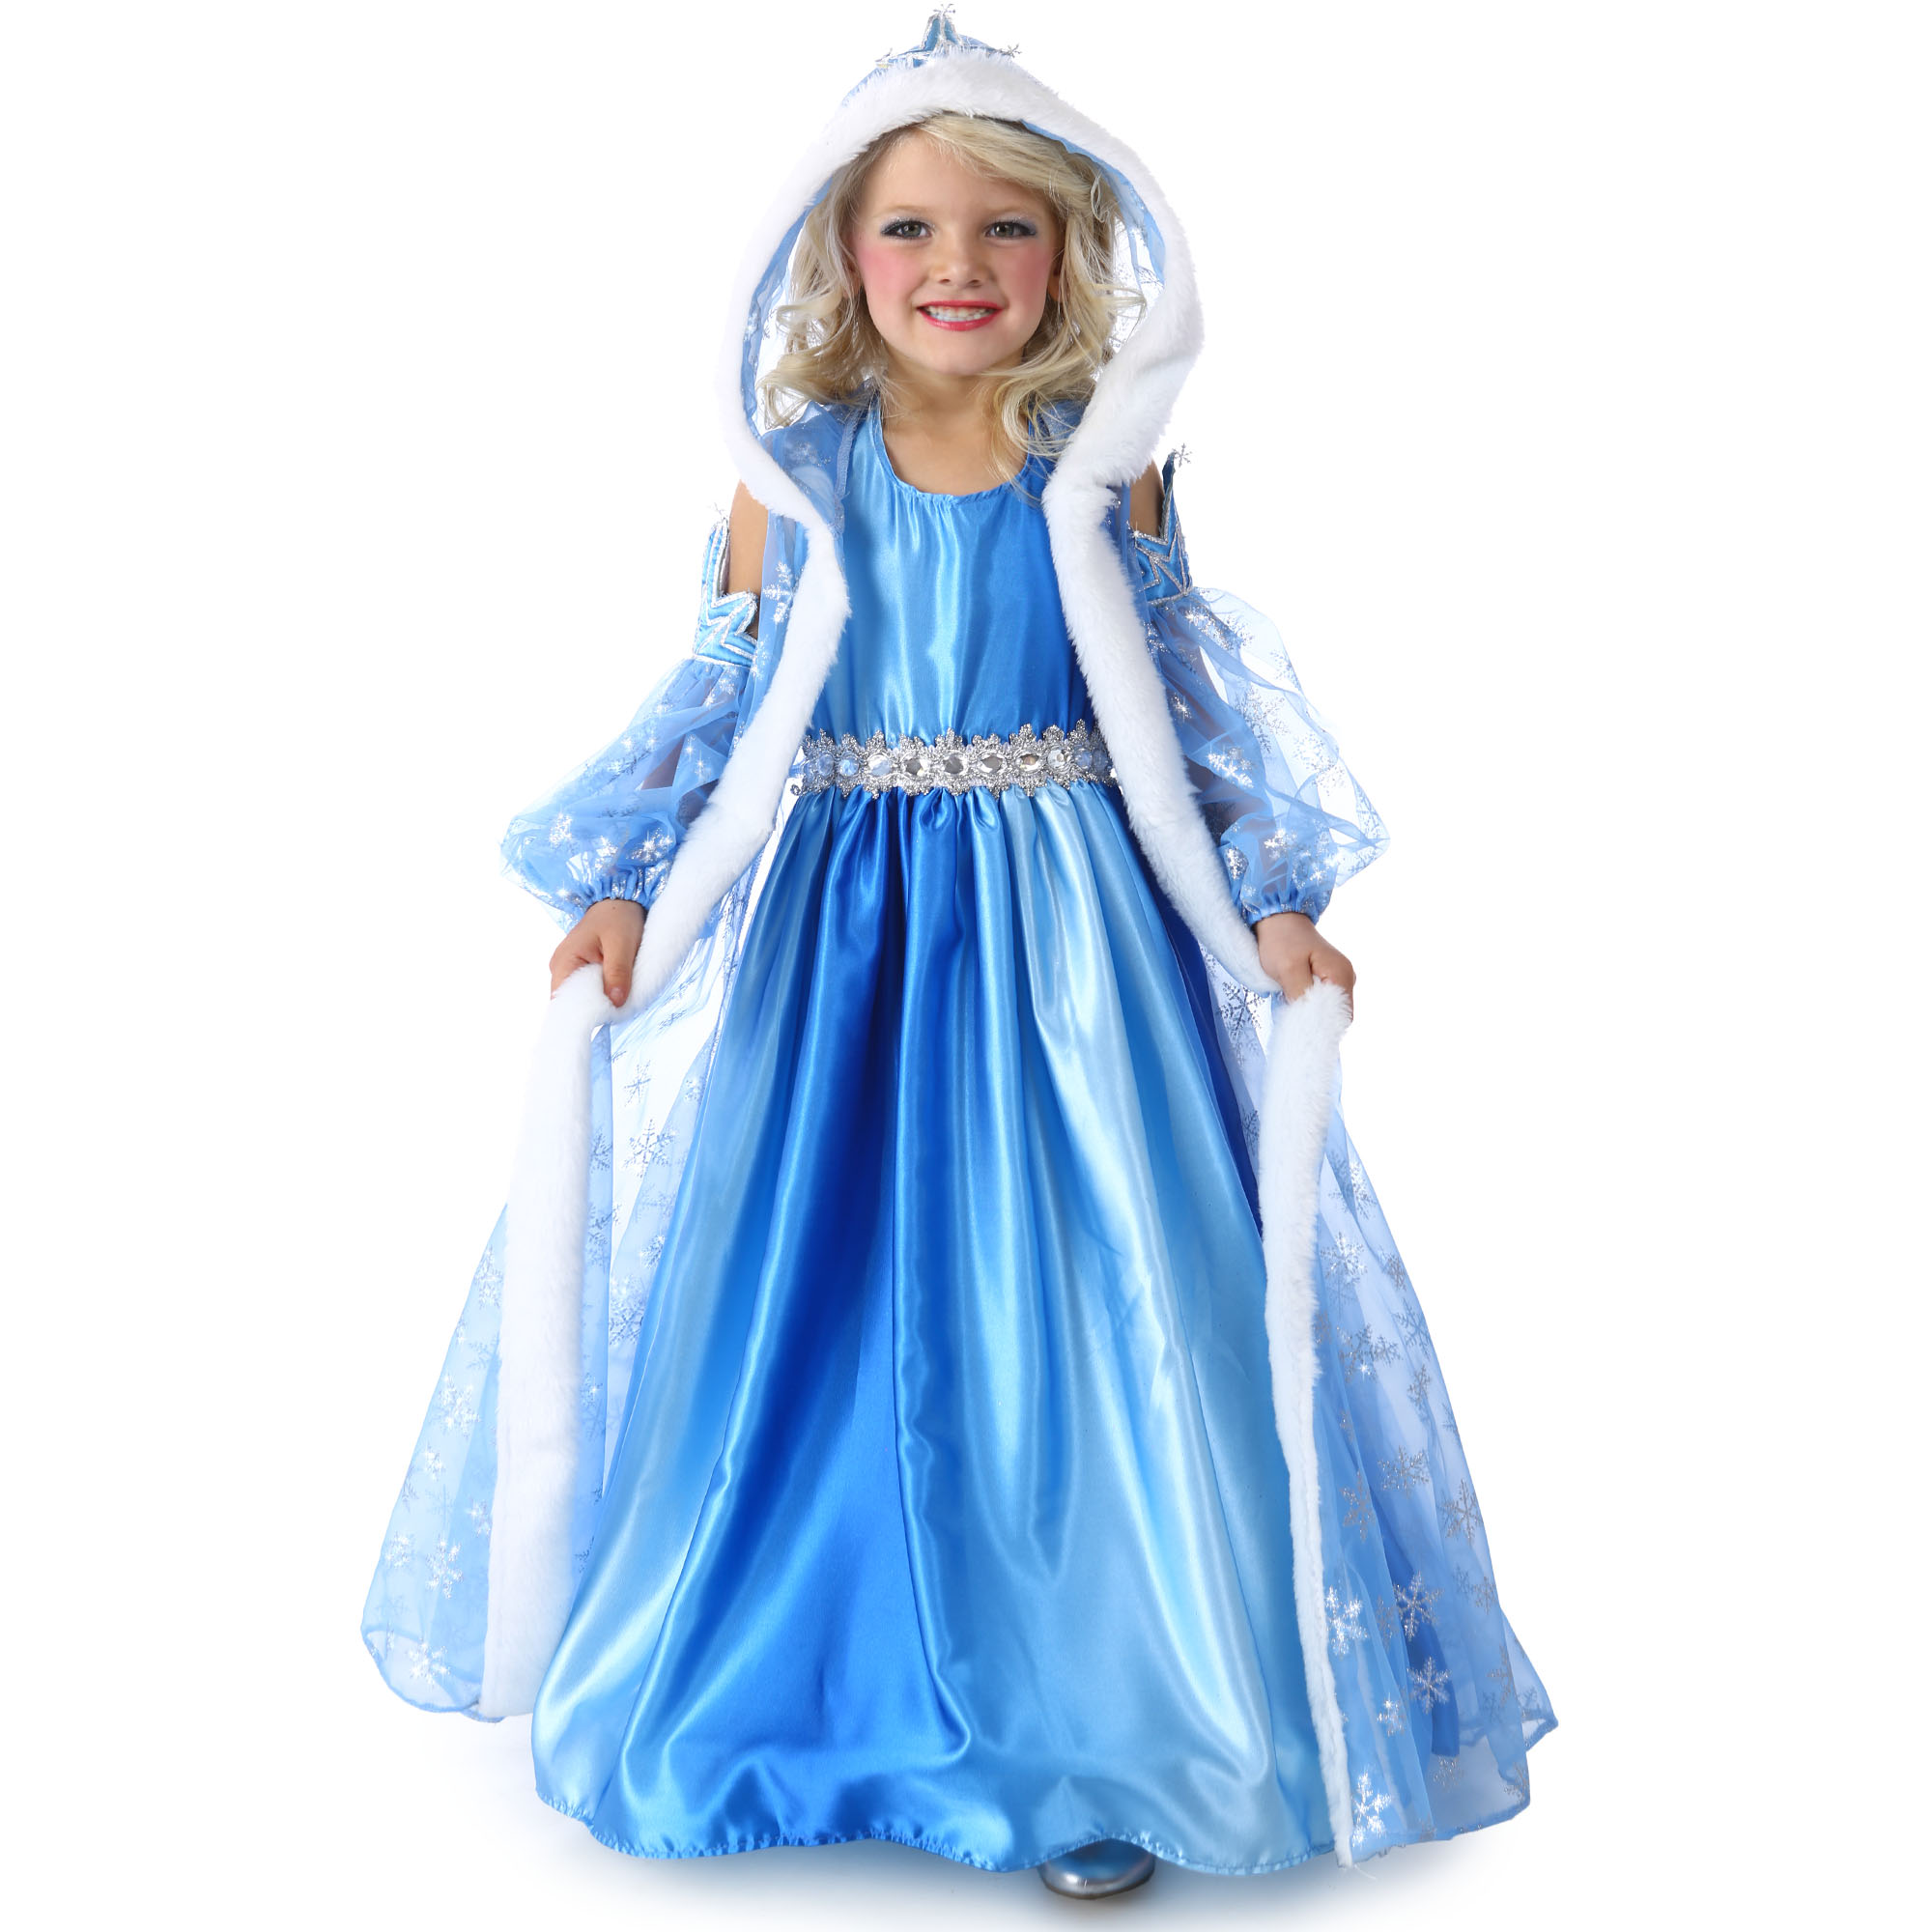 Princess Paradise Premium Icelyn Winter Princess Child Costume by Princess Paradise